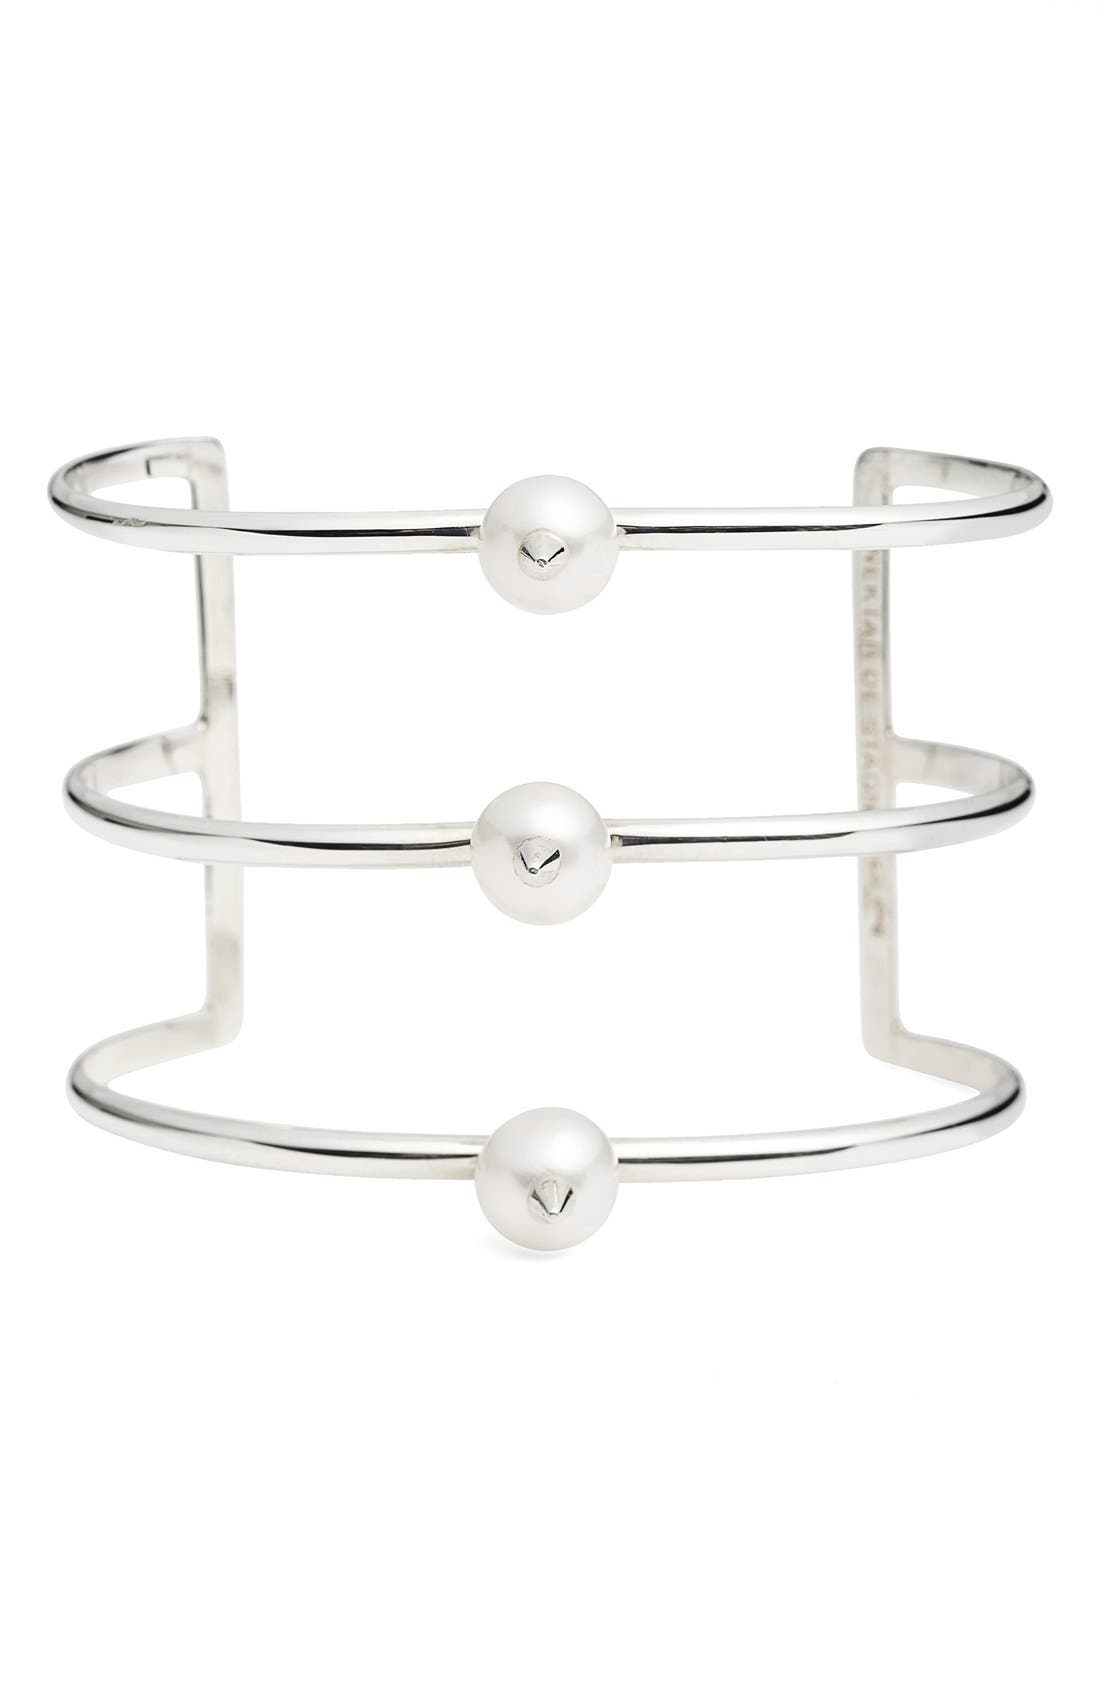 Main Image - Nektar de Stagni 'New Classics' Spike Cultured Pearl Triple Row Cuff